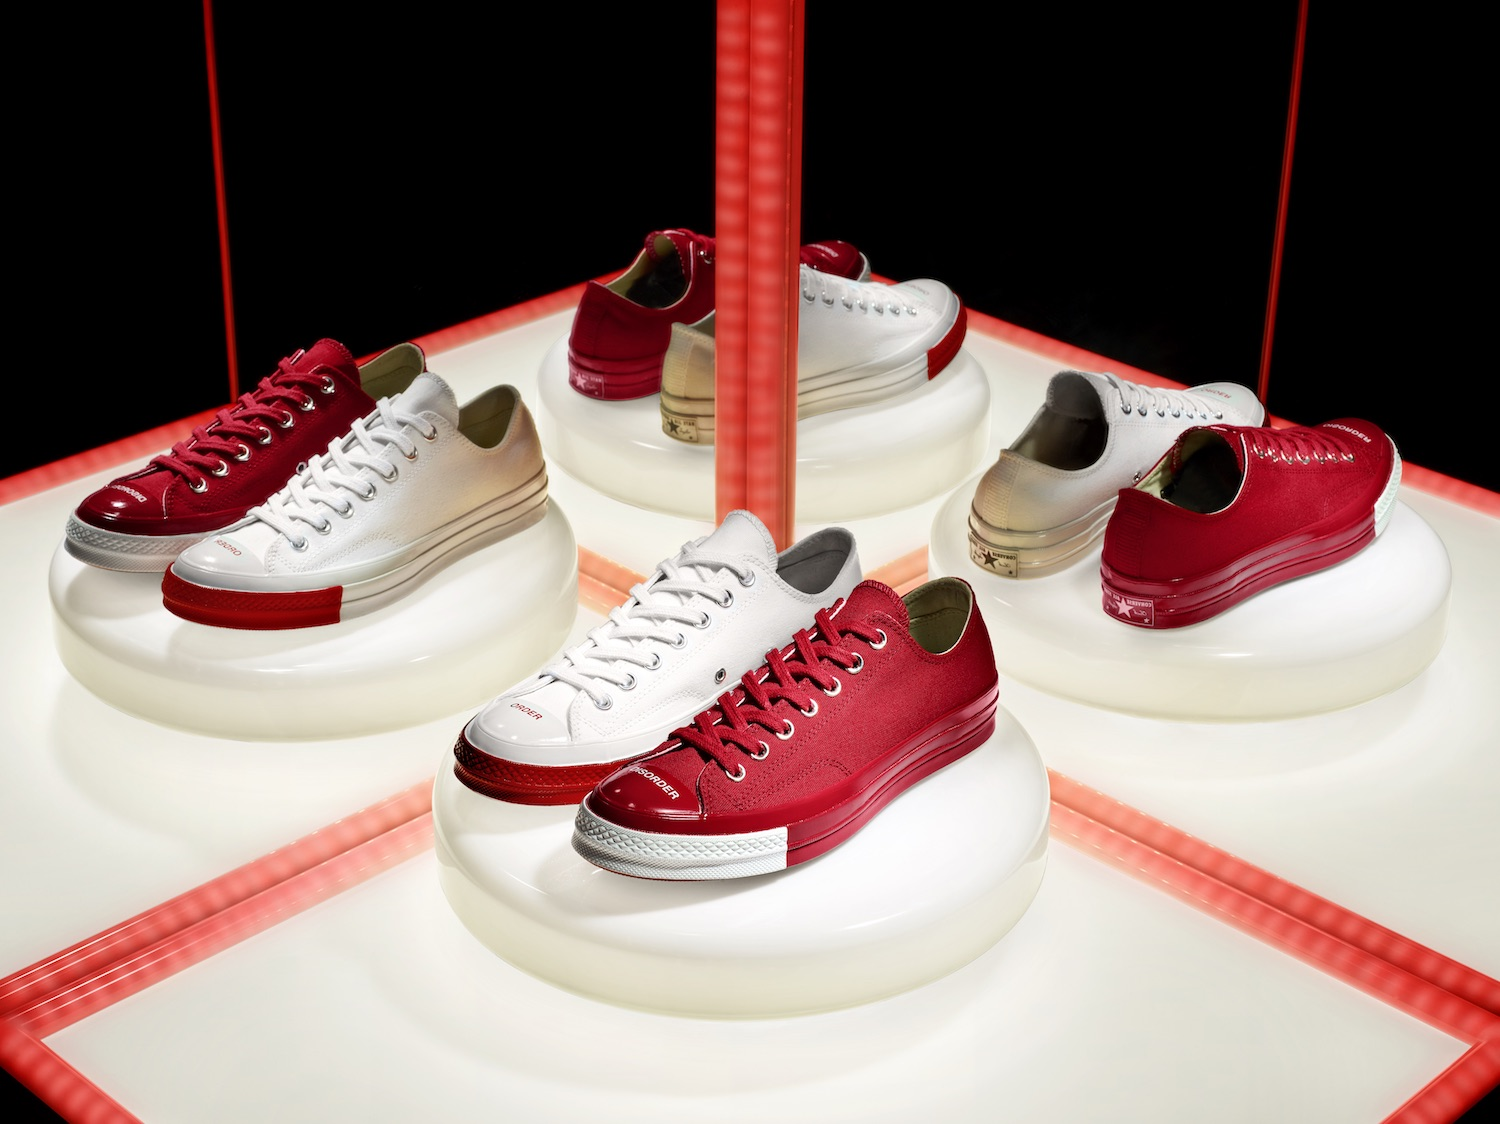 Converse x Undercover Order/Disorder | Collater.al